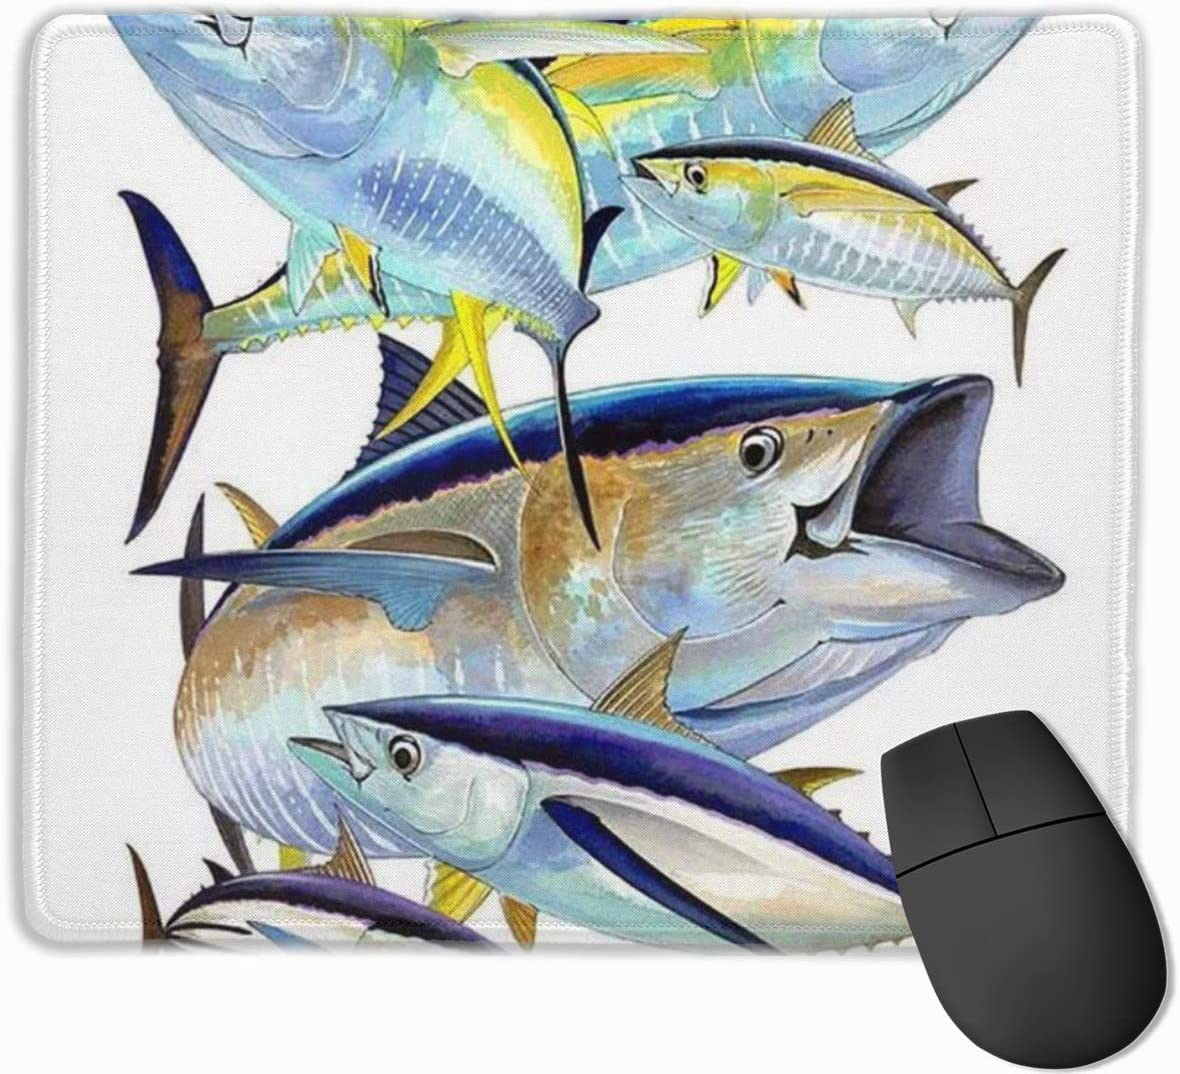 FGERTSAD Tuna Funny Mouse Pad with Stitched Edge Mouse Mat Non-Slip Rubber Base 9.85 X 11.8 Inch Office Mousepad for Laptop Computer /& PC Mouse Pads